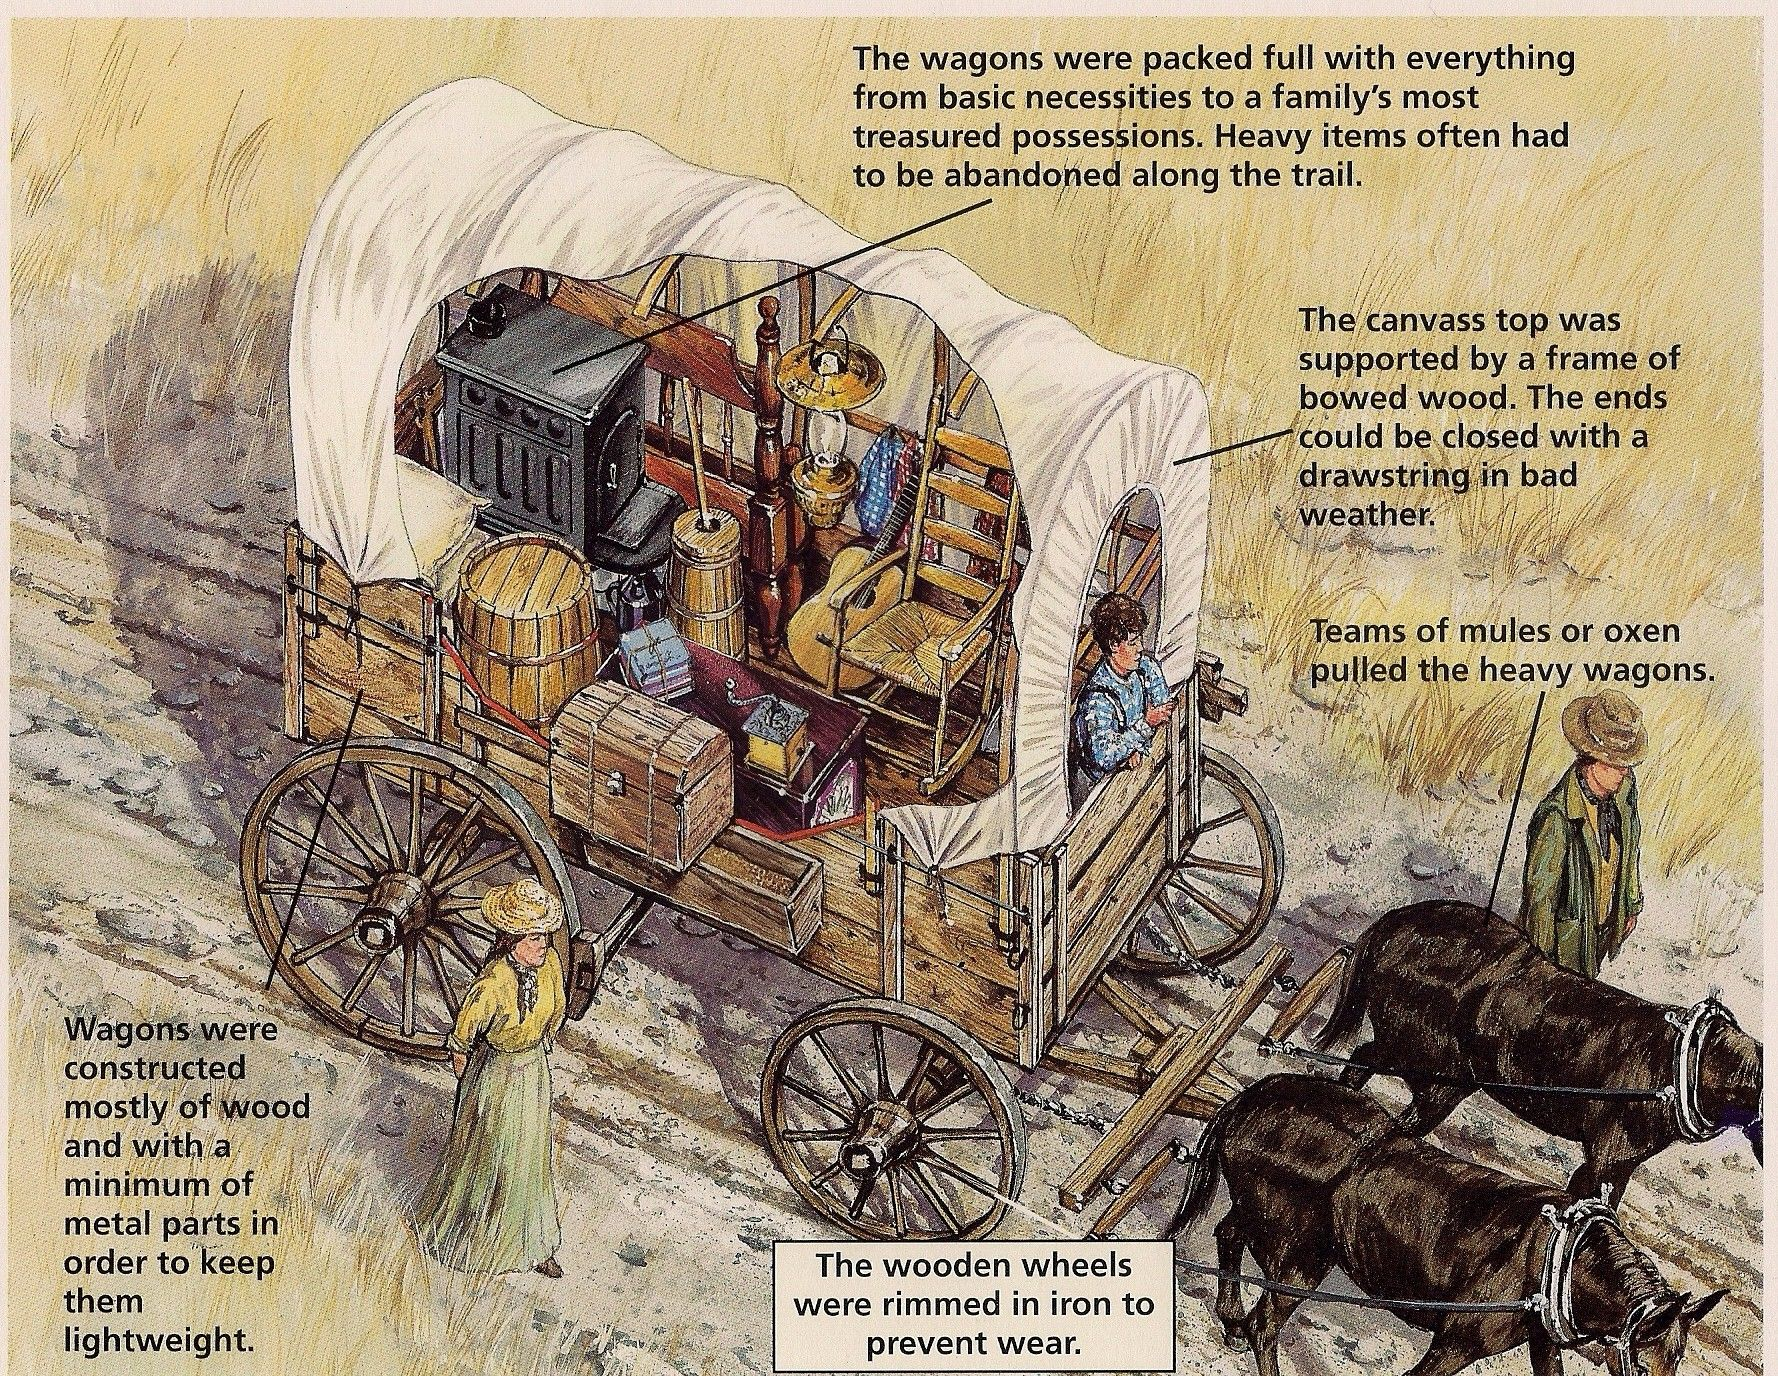 1778x1376 The Wagons On The Oregon Trail Were Packed Full Of Everything